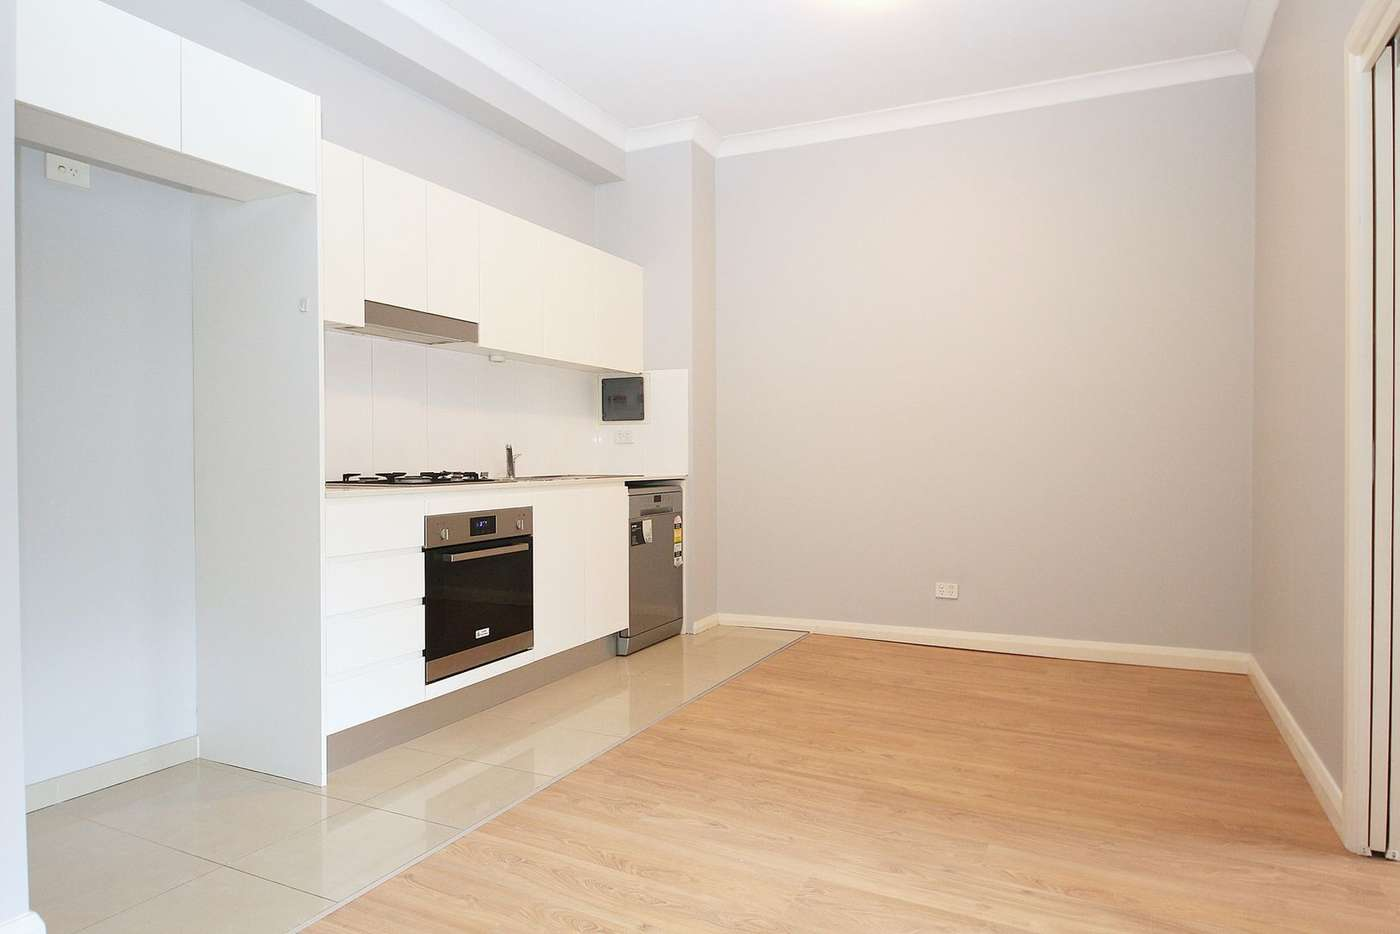 Fifth view of Homely apartment listing, 2/315 Bunnerong Road, Maroubra NSW 2035